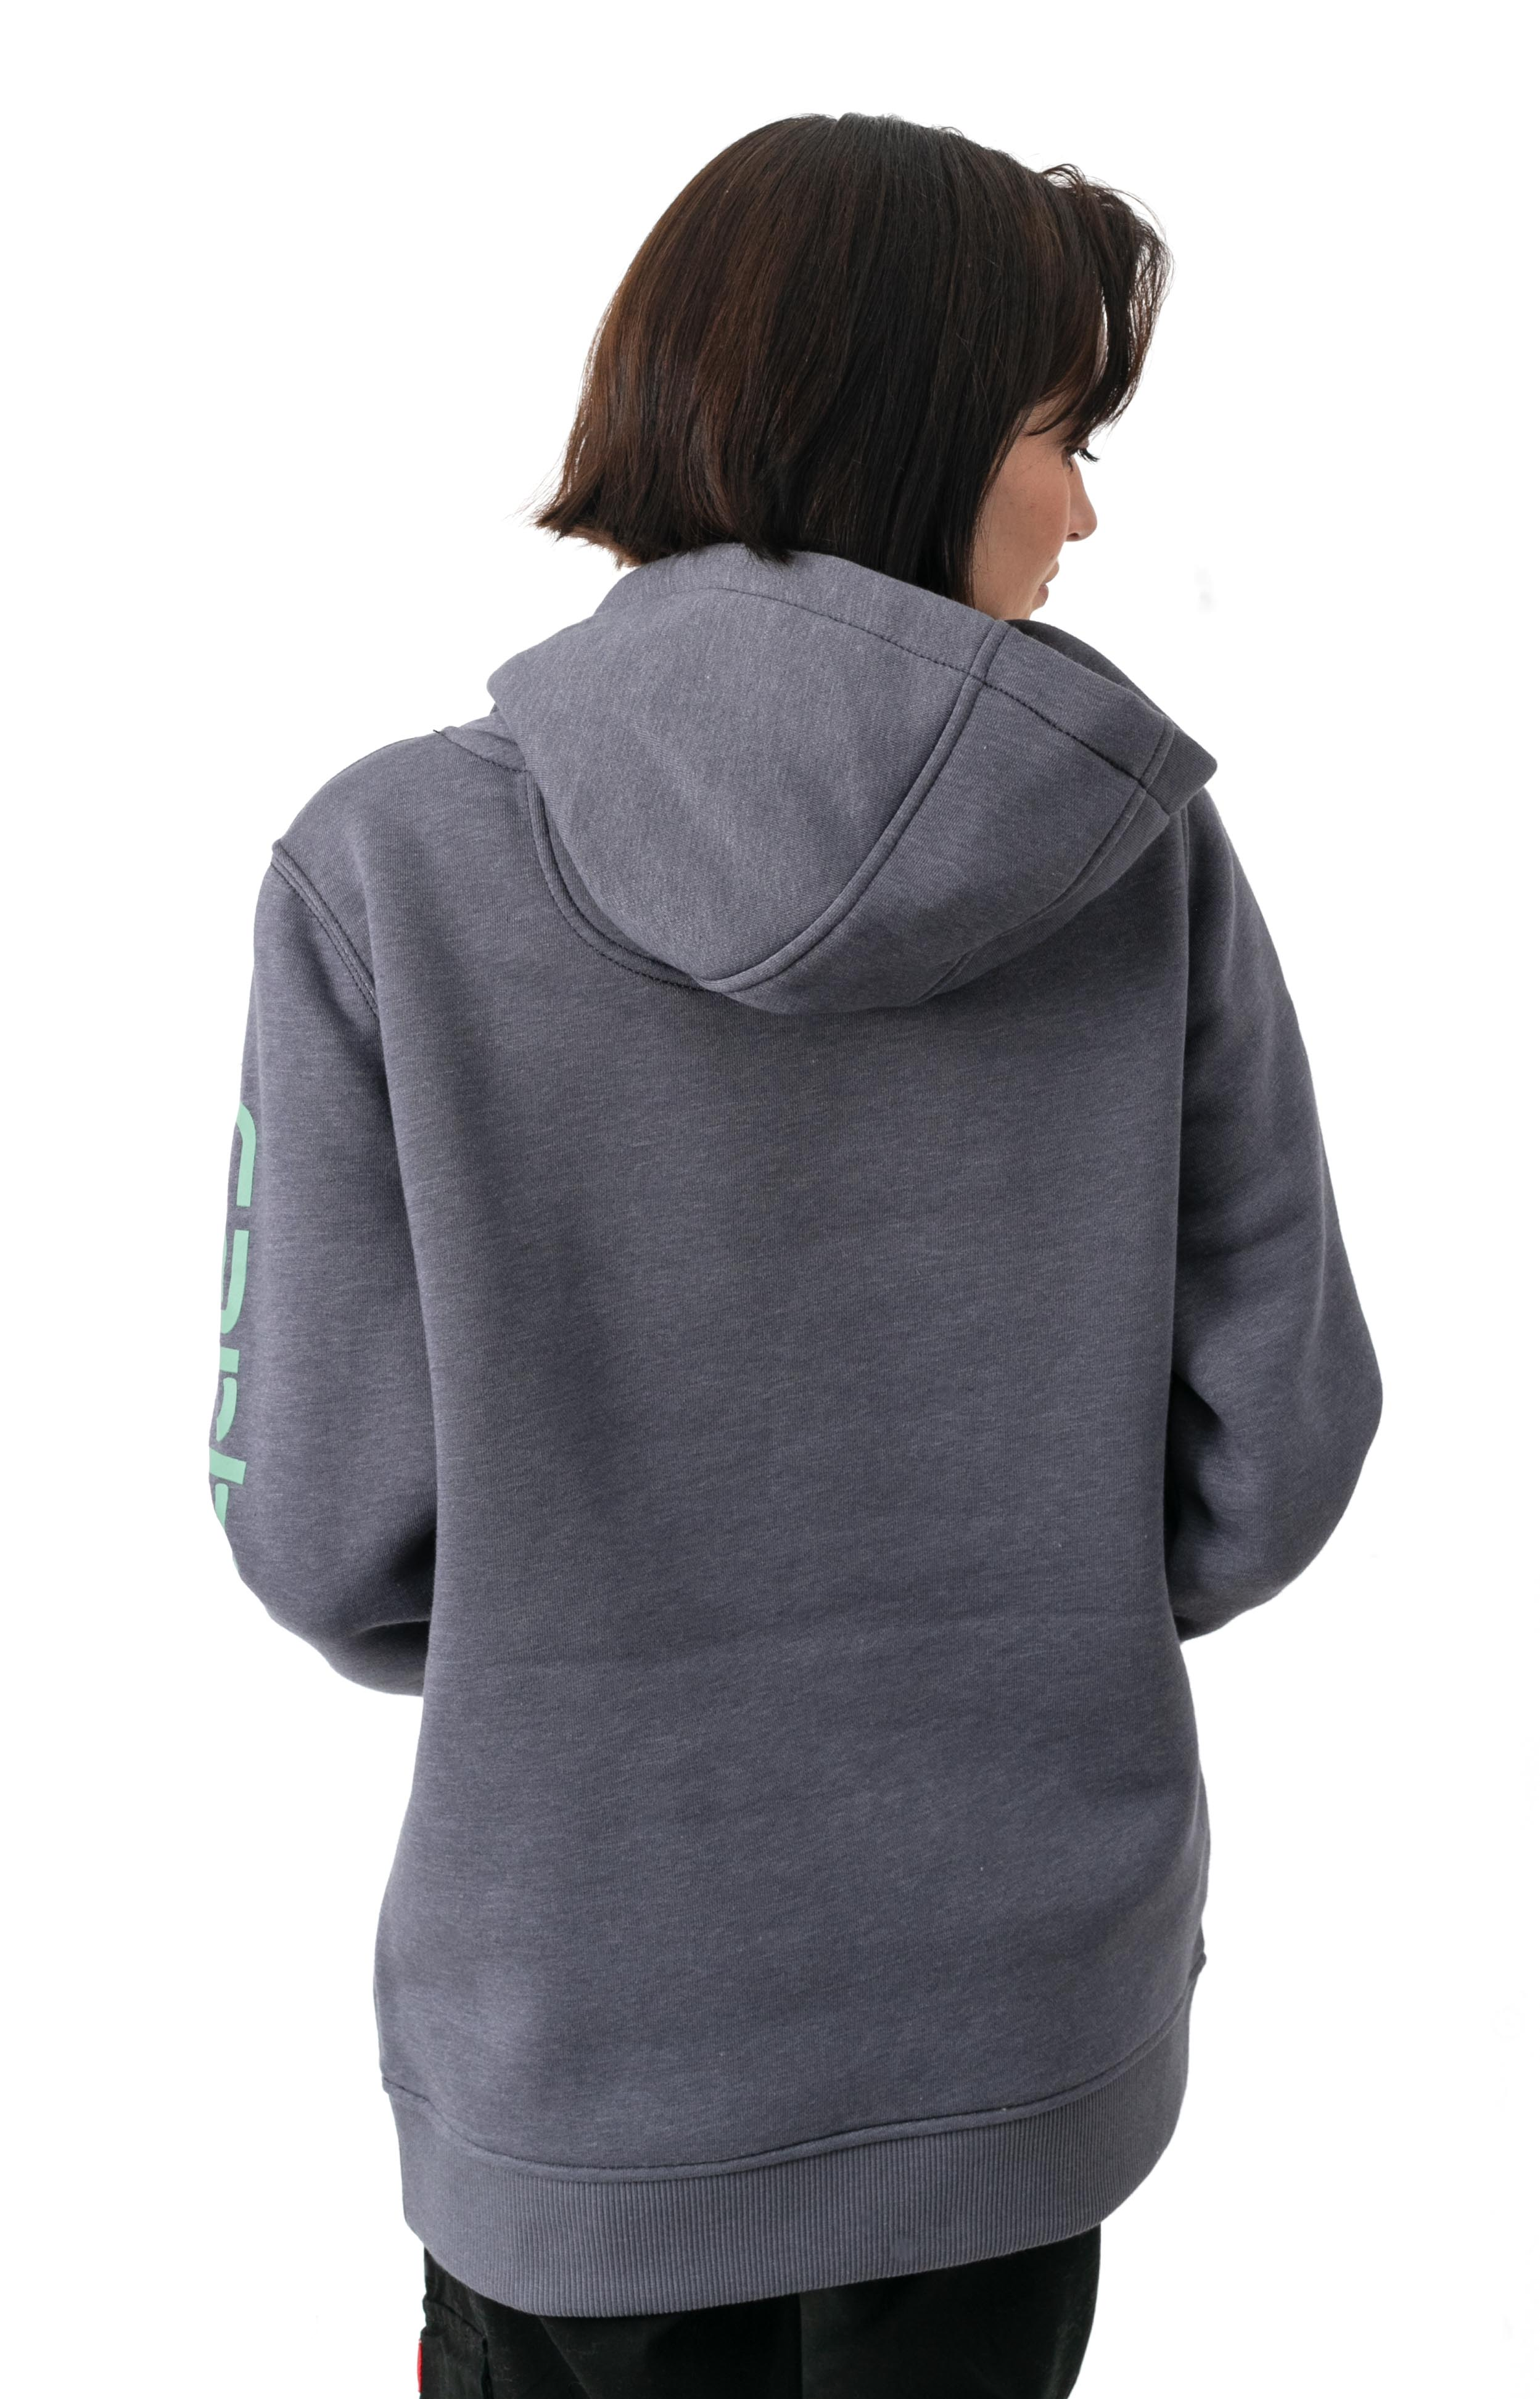 (102791) Clarksburg Graphic Sleeve Pullover Hoodie - Graystone Heather  3